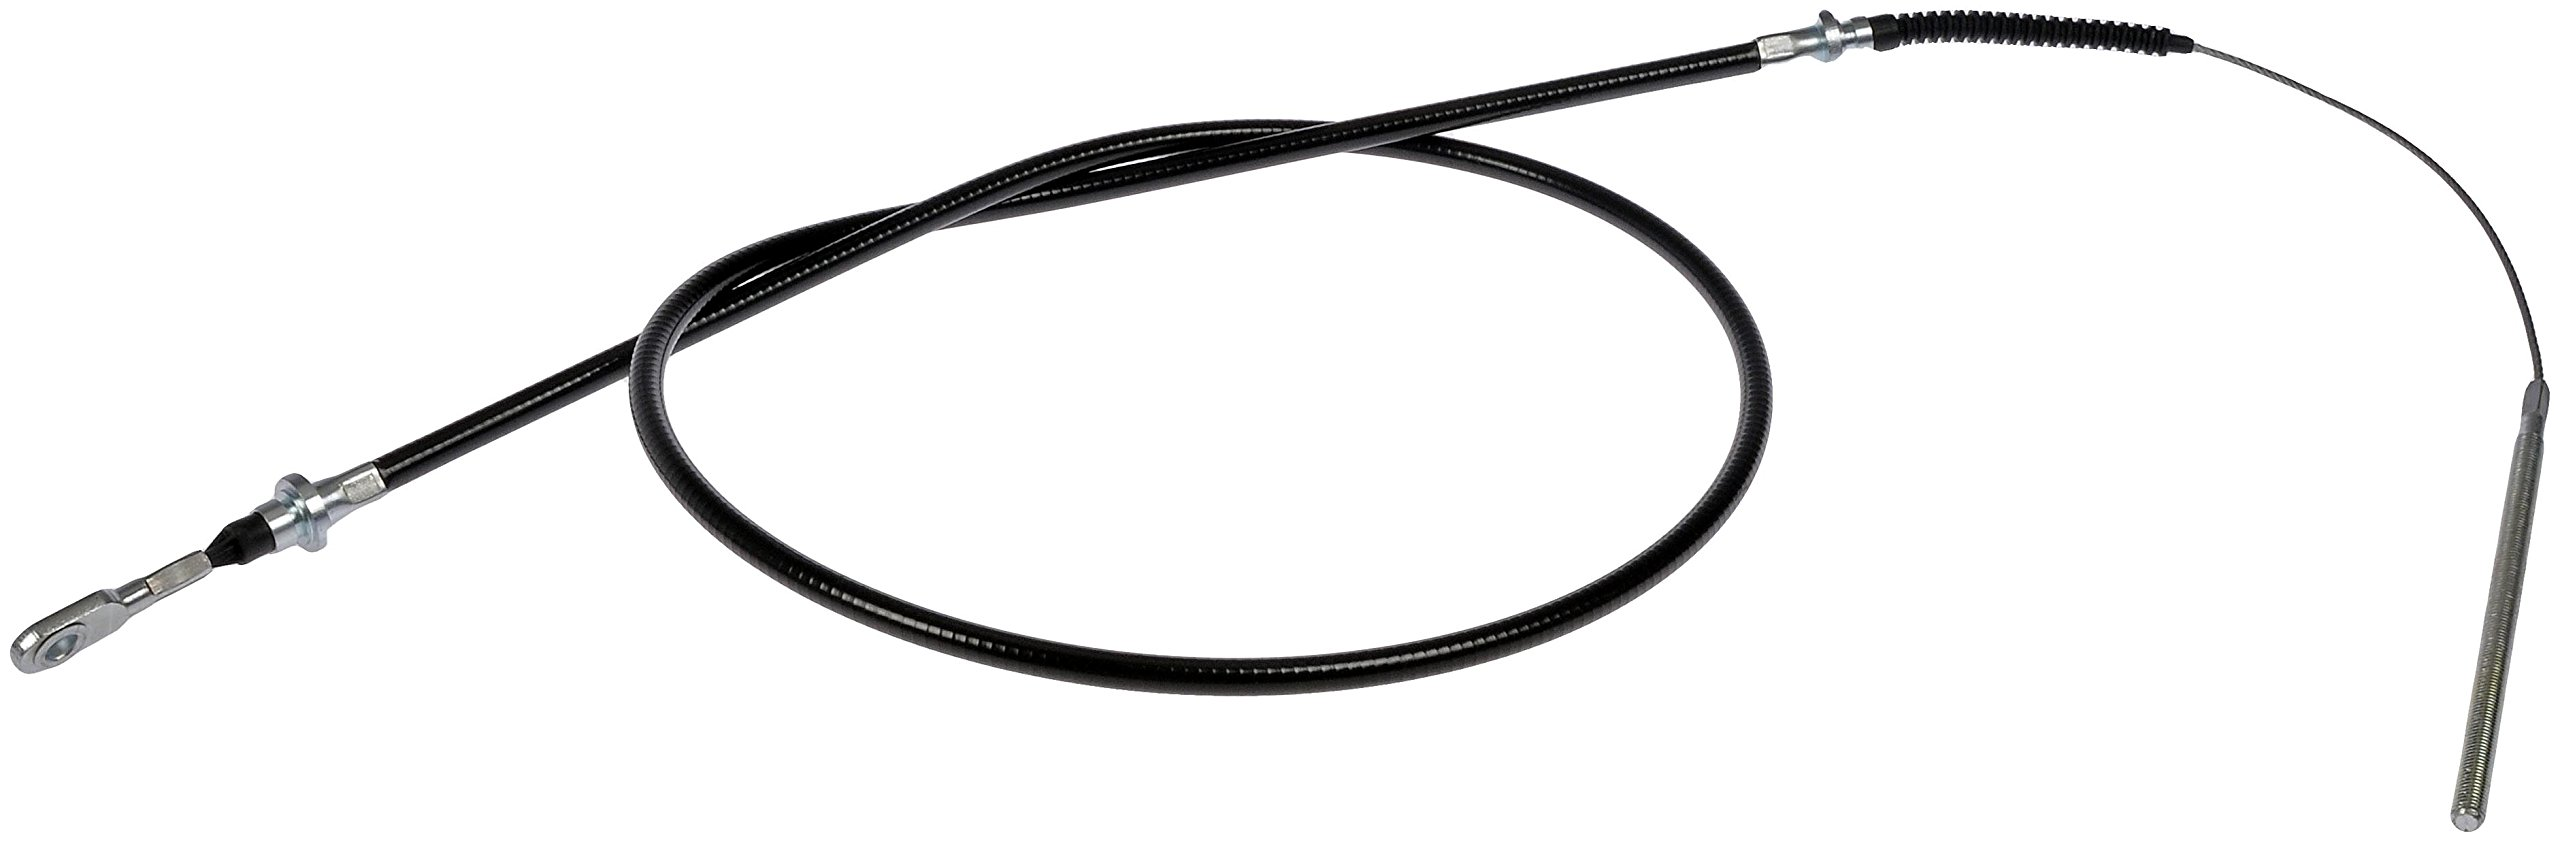 Dorman 924-5604 Clutch Cable by Dorman (Image #1)